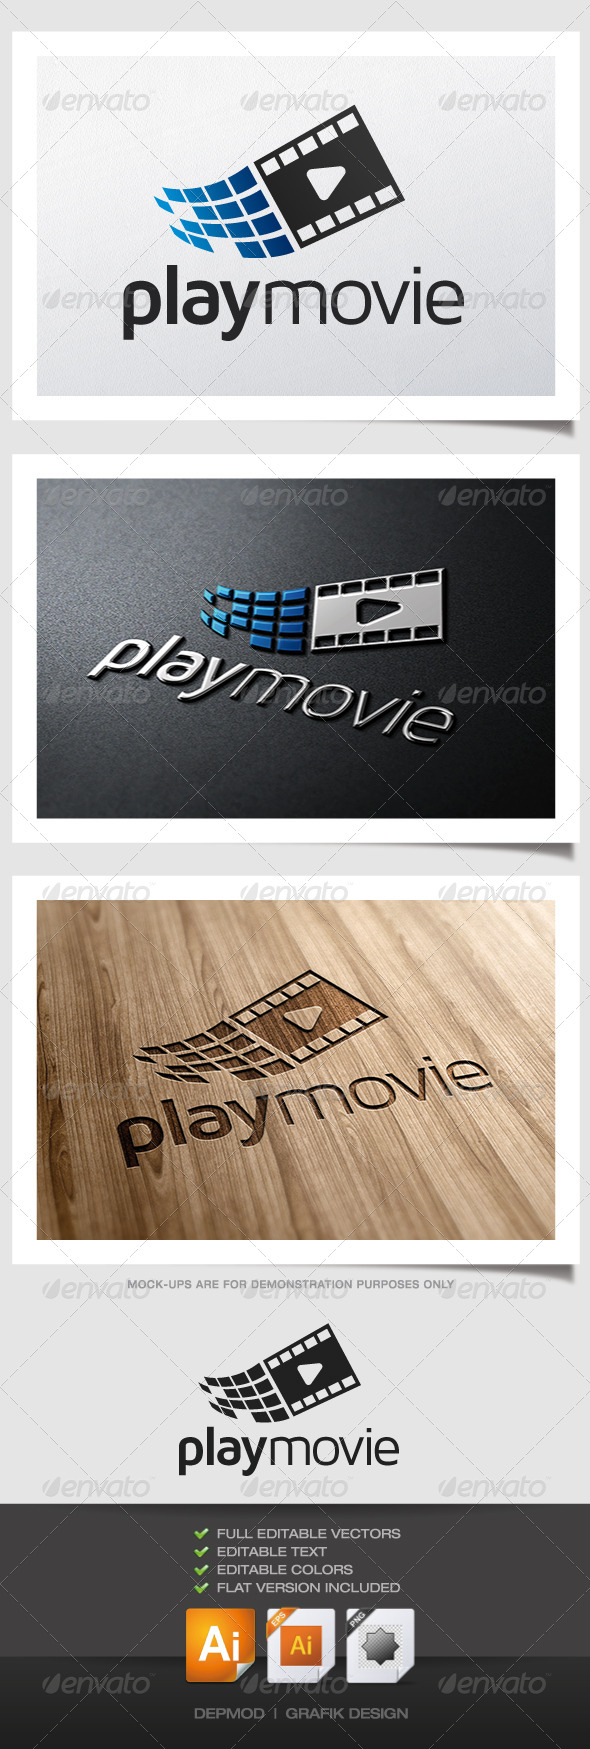 Play Movie Logo